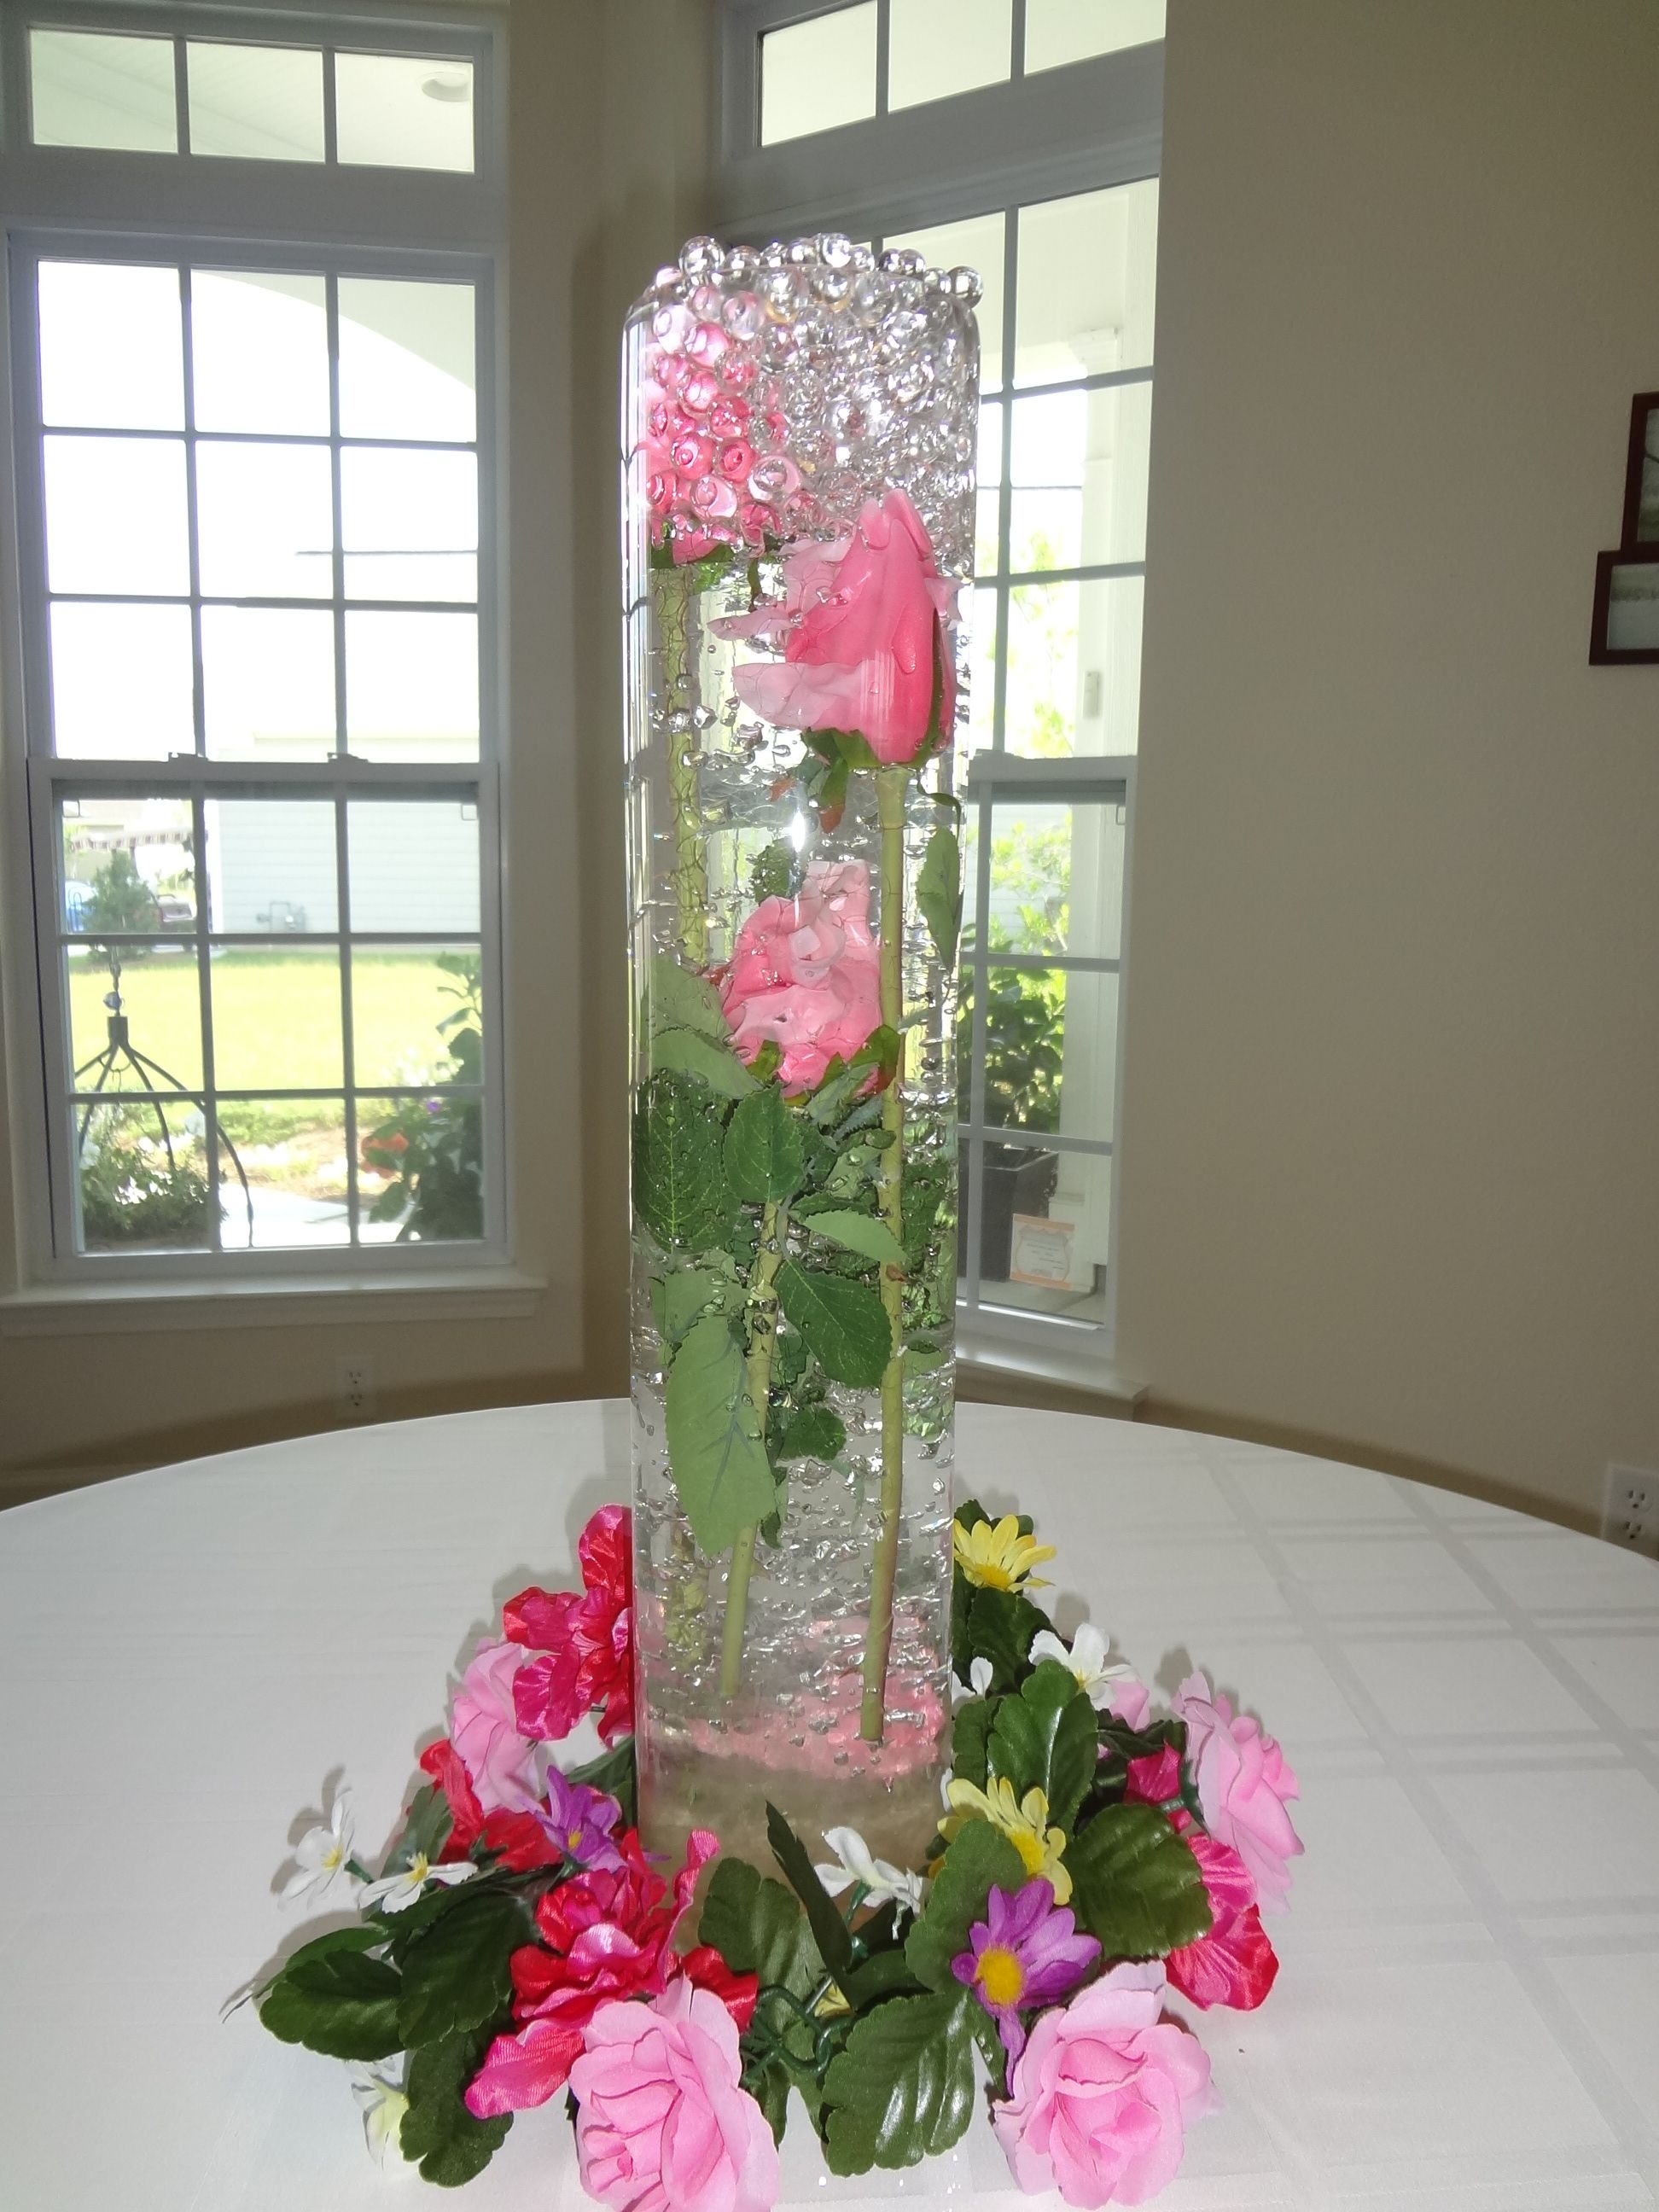 Hurricane vases with flowers in water beautiful water beads for hurricane vases with flowers in water beautiful water beads for vases an easy to reviewsmspy